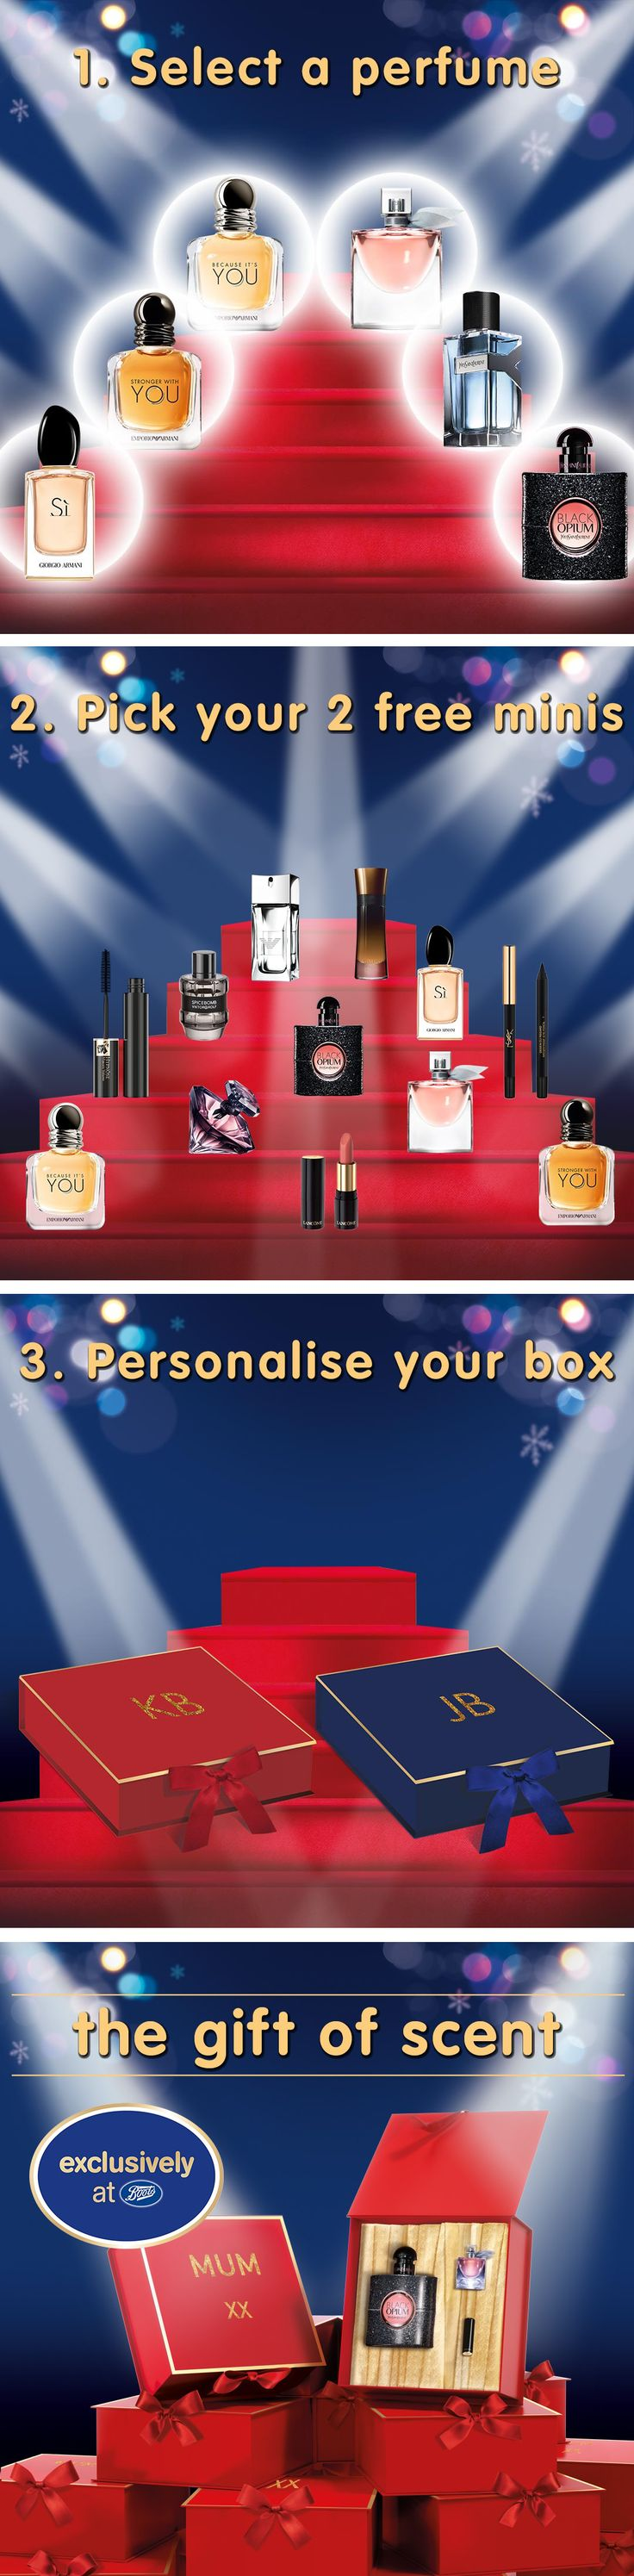 Discover how to create a personalised, custom fragrance gift set to make your loved ones feel special this Christmas! Pick a fragrance among the selection, get a complimentary personalised box and two free mini products when purchased in store.